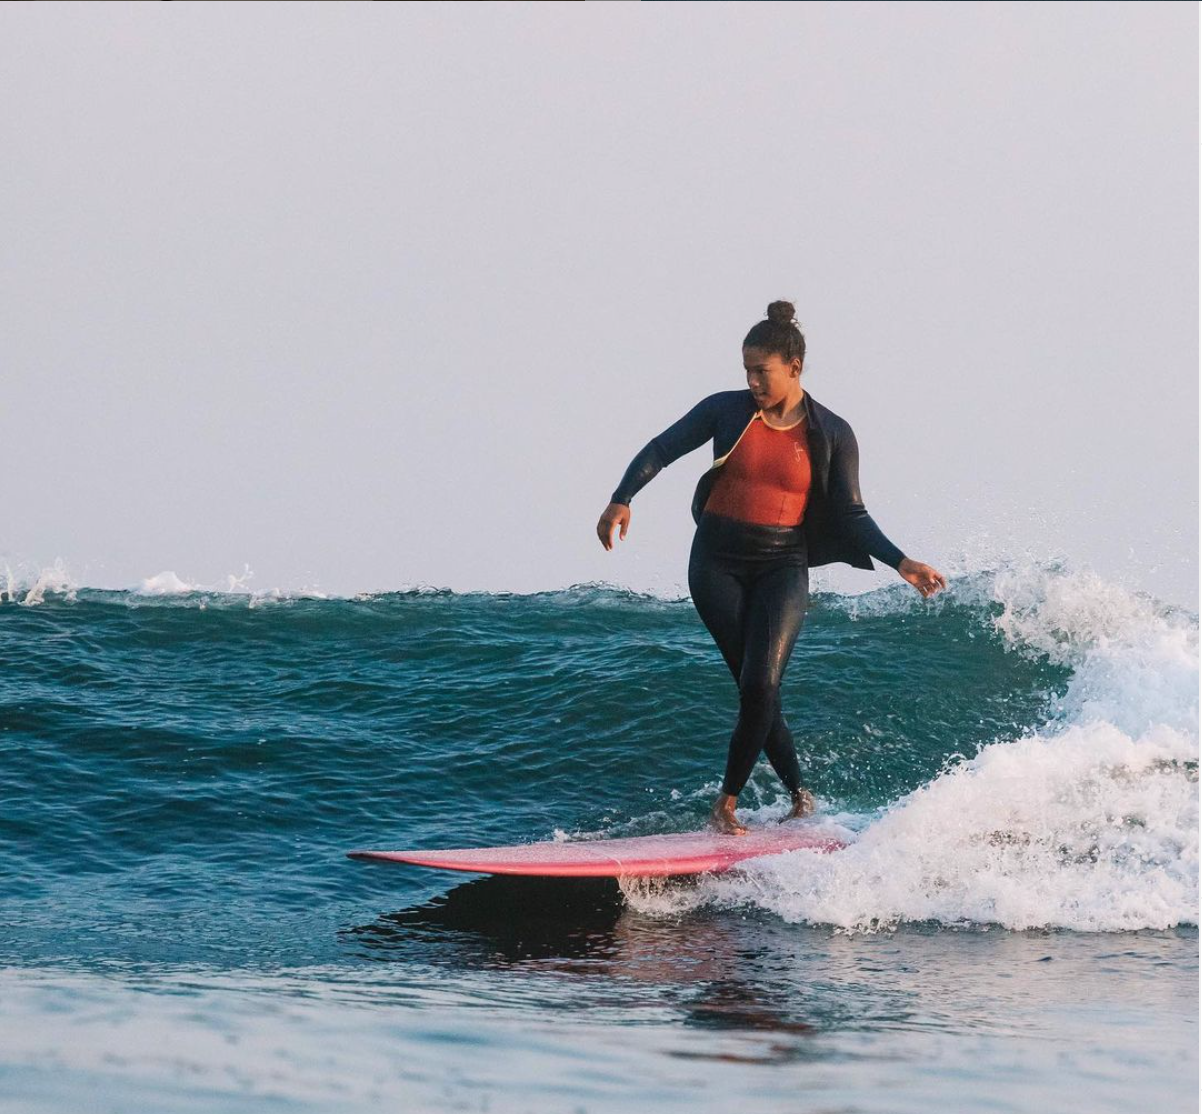 Chelsea Woody surfs with her own style, a combination of ferocity and grace. Photo by Edin Markulin.